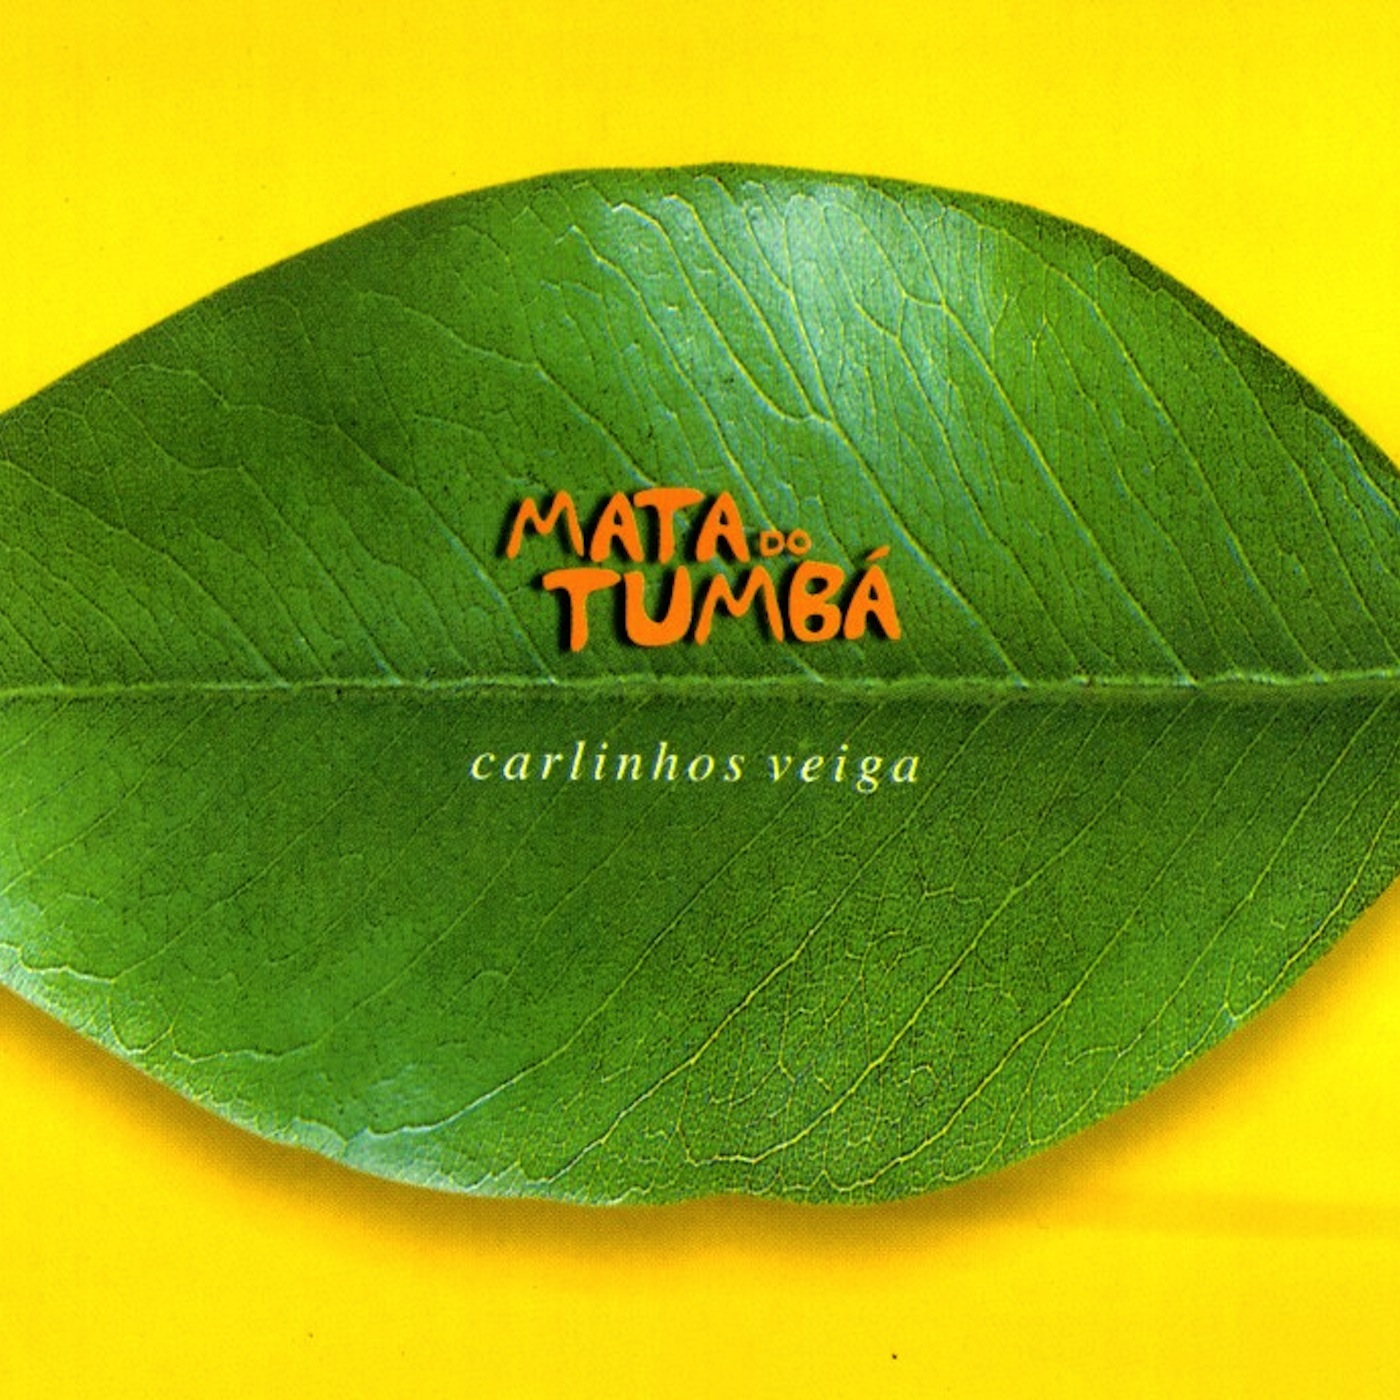 MATA DO TUMBÁ (2002)